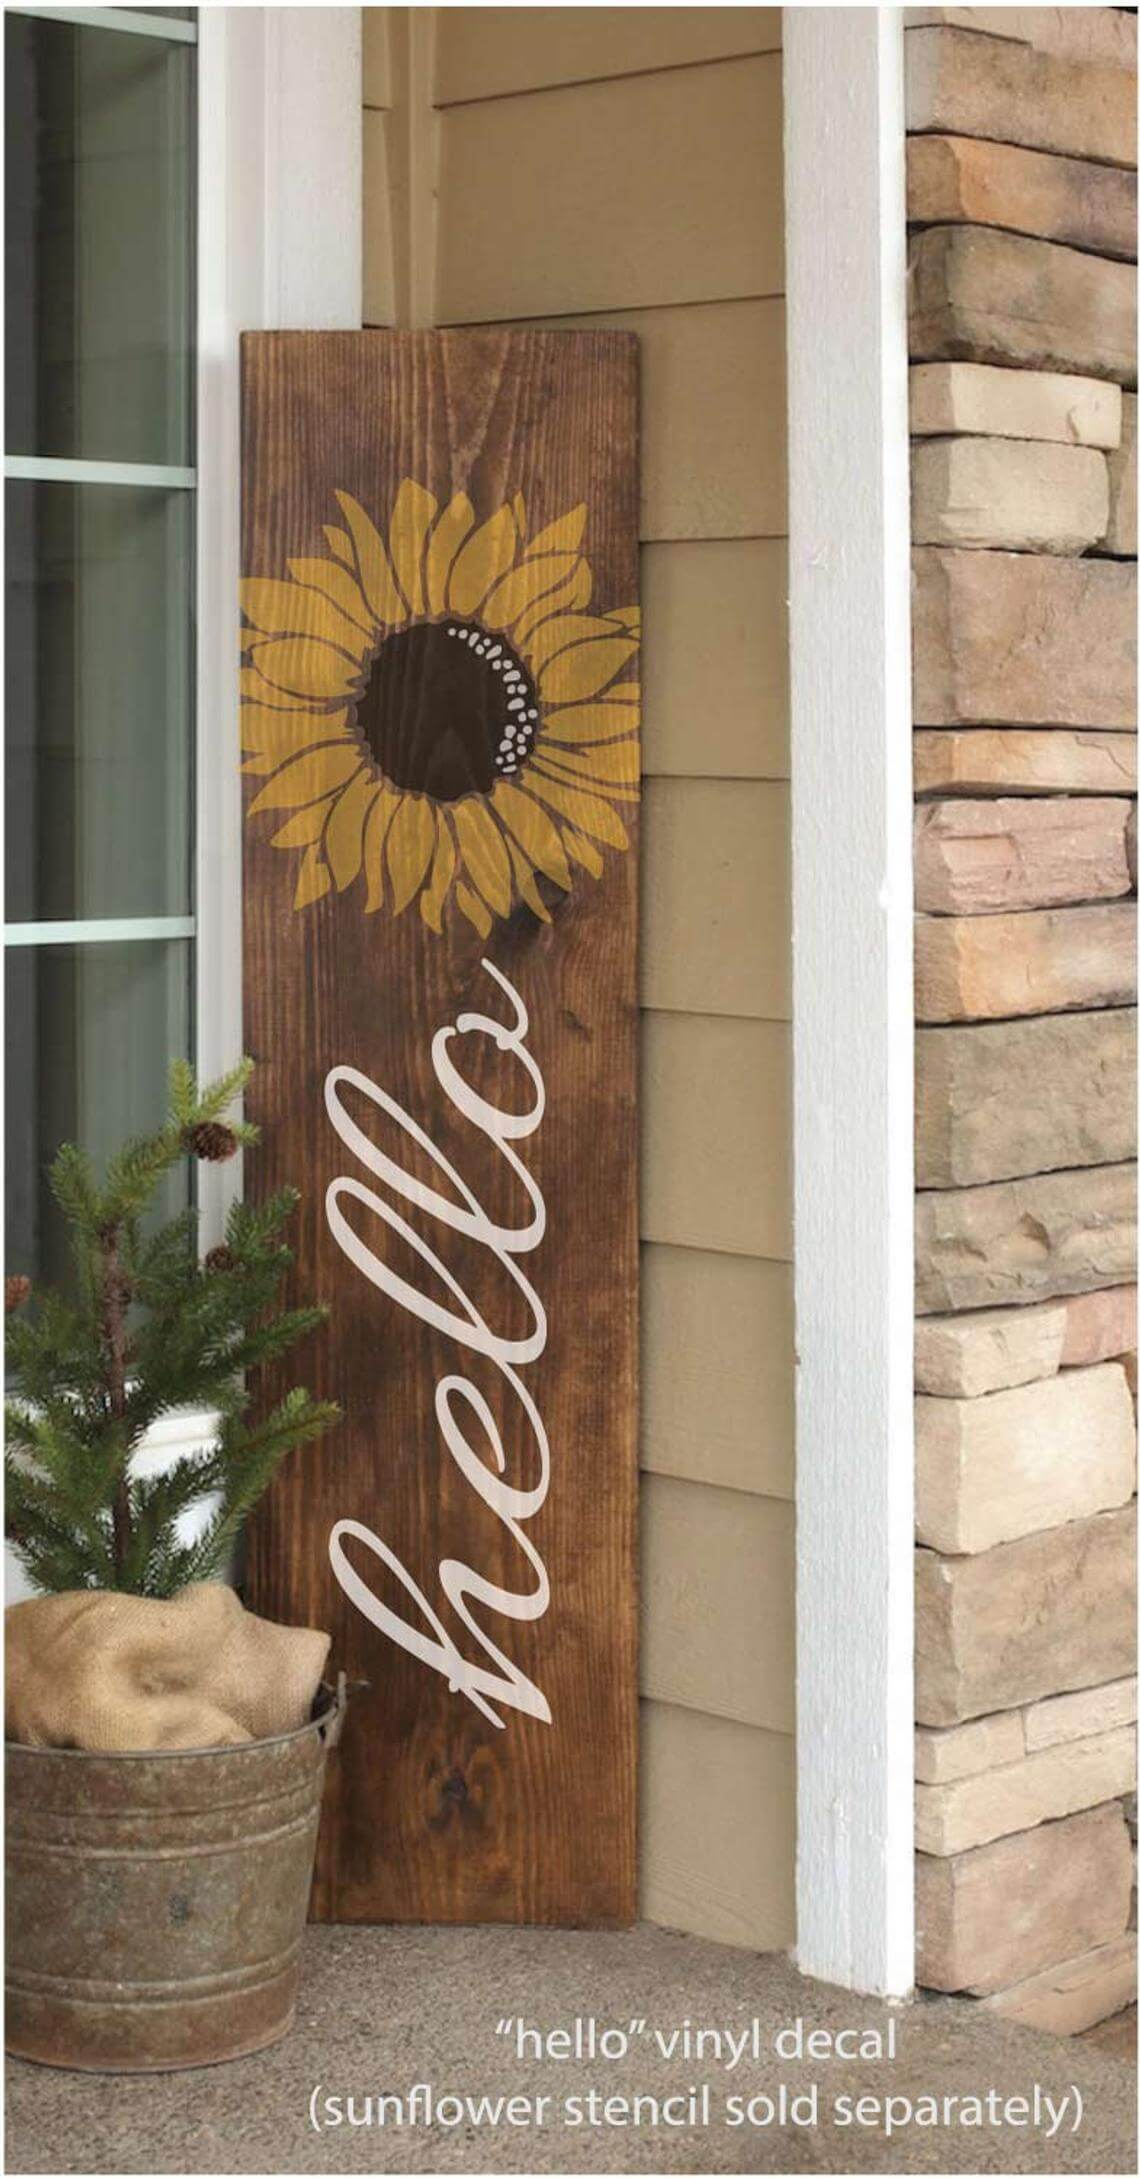 hello Vinyl Decal Sign Lettering